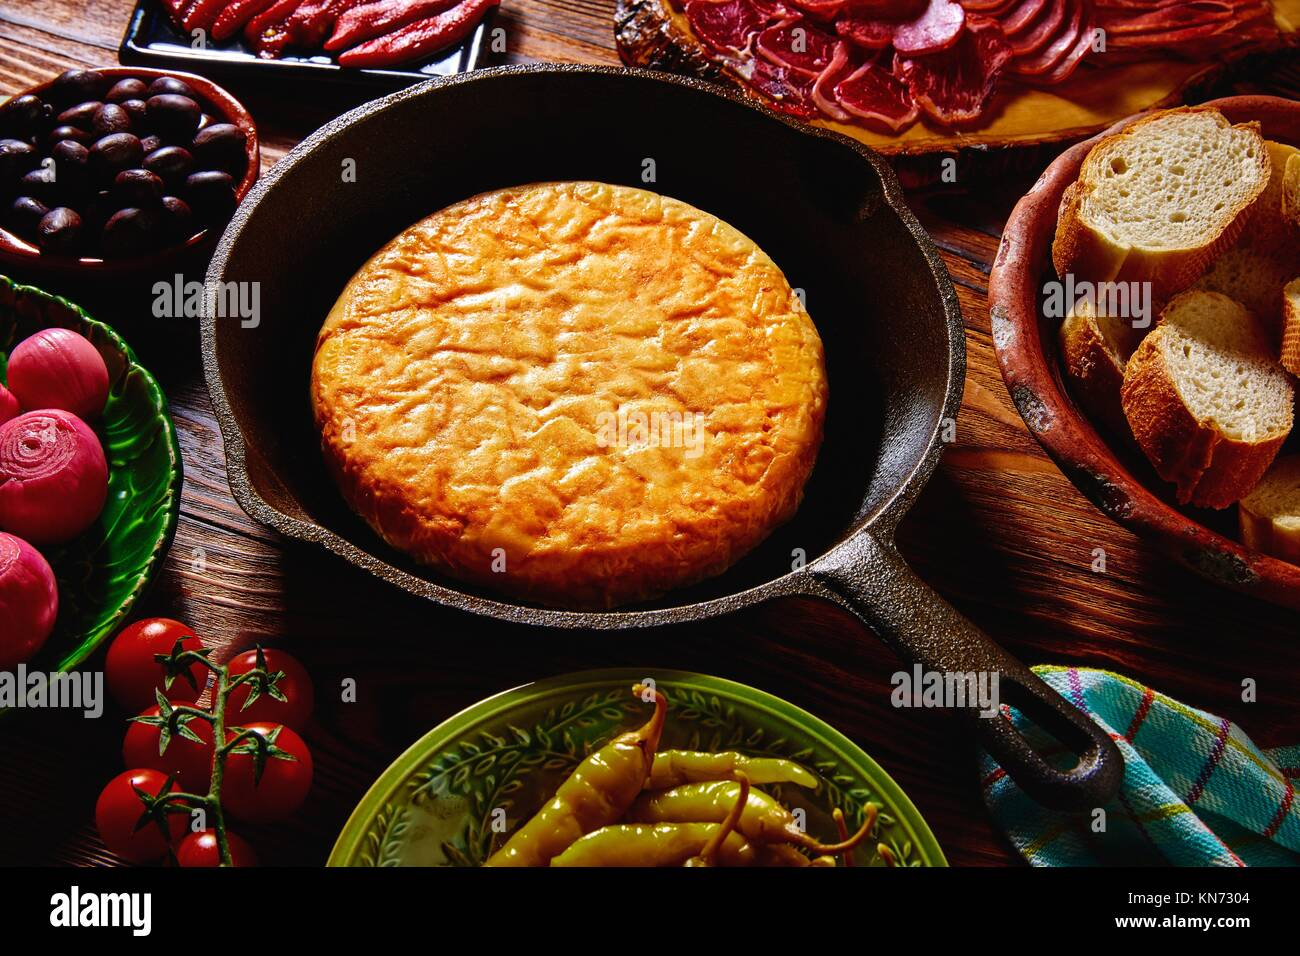 Tapas tortilla de patata potatoes omelette in a pan from Spain. - Stock Image